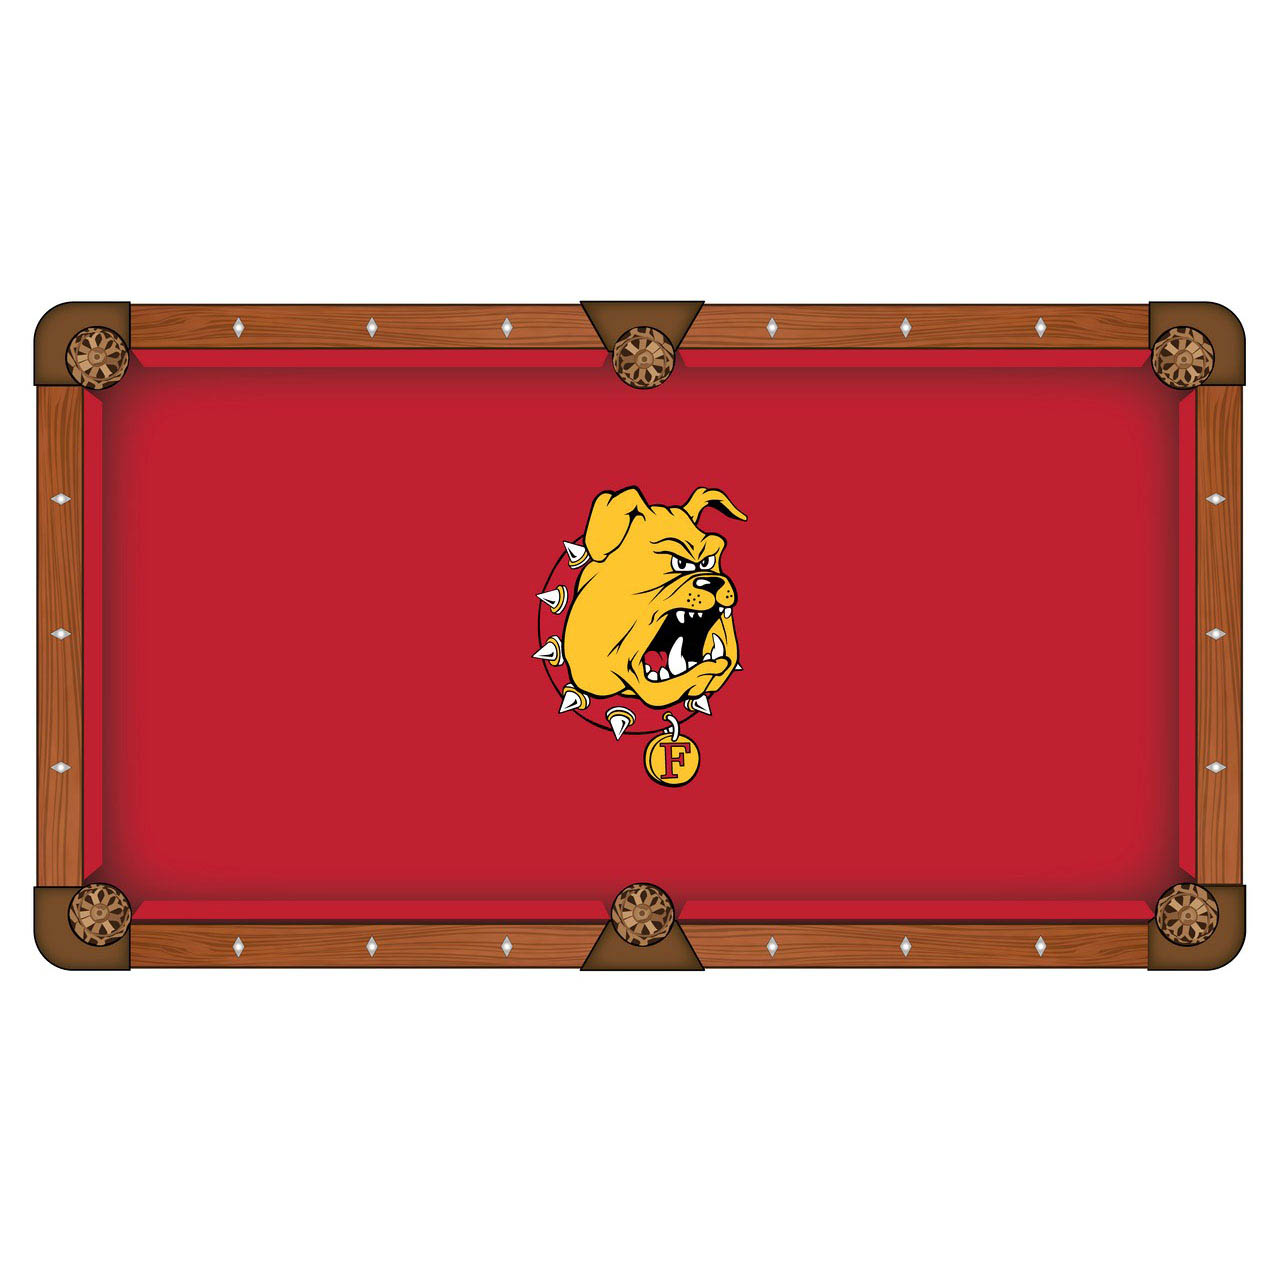 Optimal Ferris State University Pool Table Cloth Product Photo